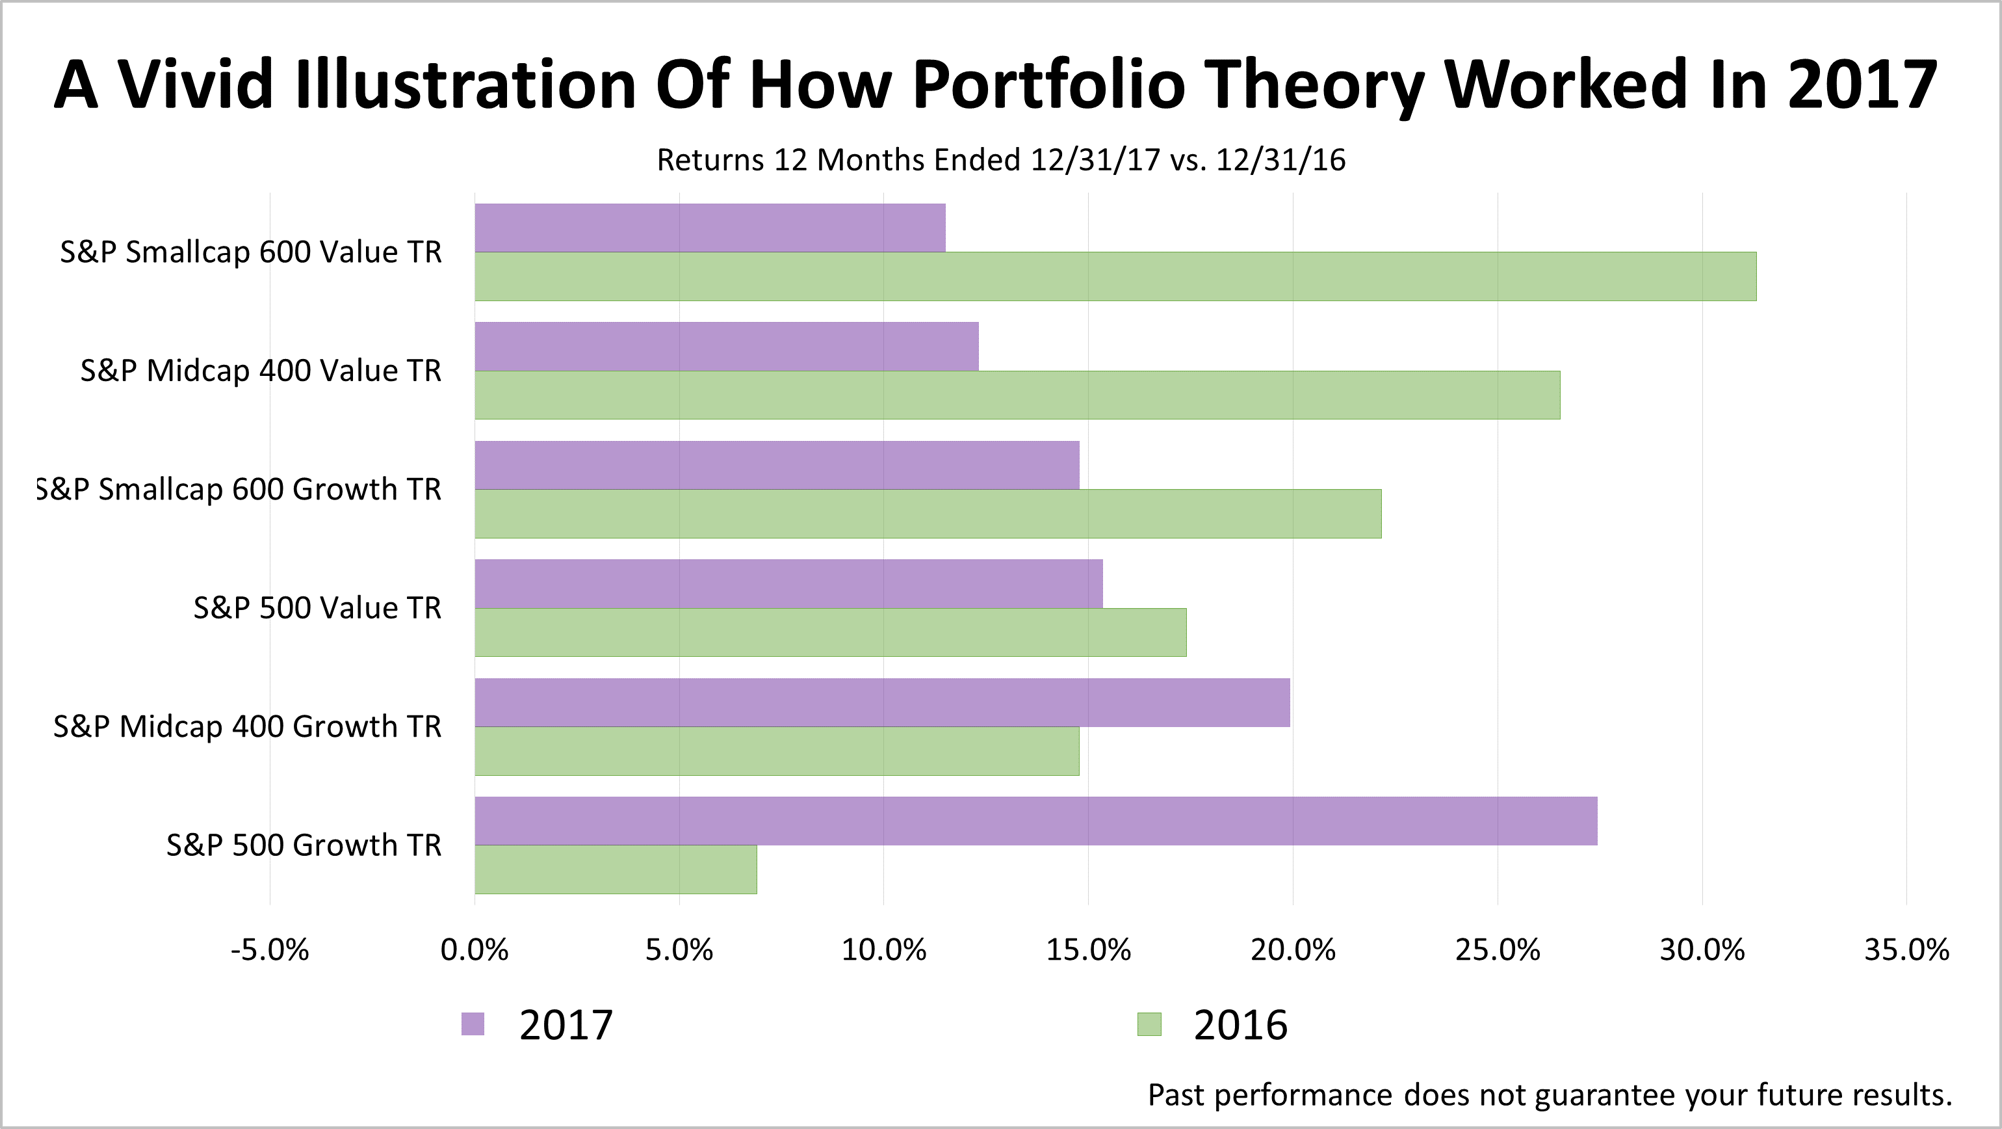 portfolio theory Harry markowitz says the reason why he's not invited to talk on television is that  his  rebalancing was a by-product of portfolio theory  which means living a  good life, so that people think well of you after you are dead.